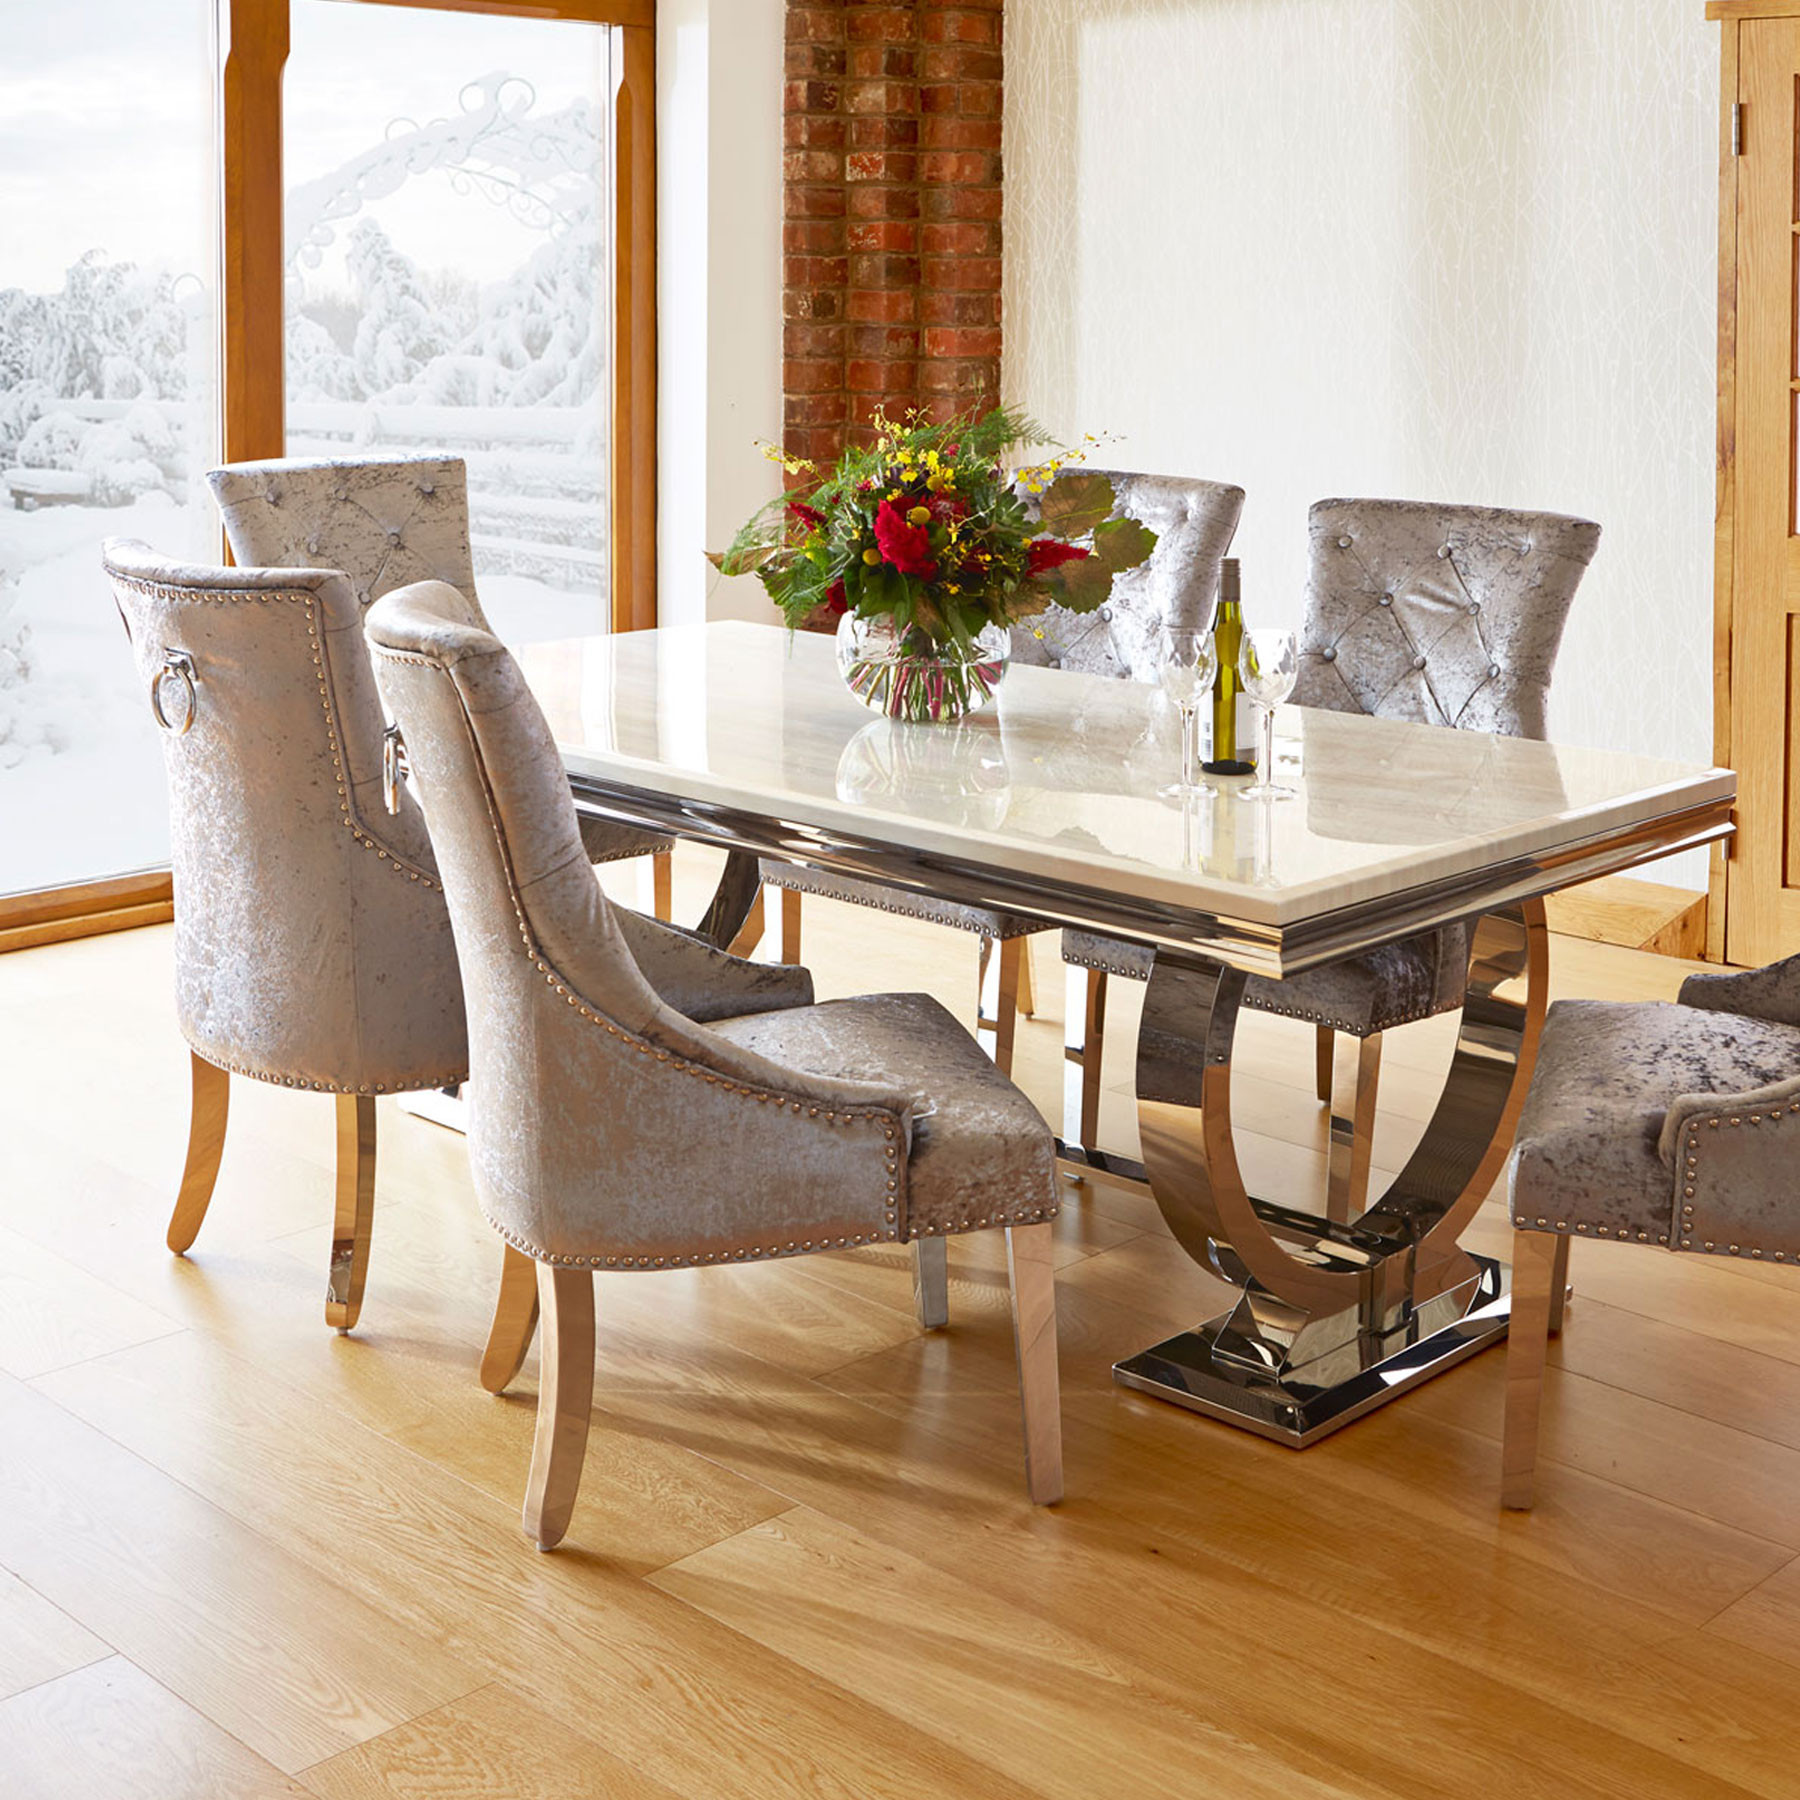 Deals On Dining Tables: Deals On Dining Furniture